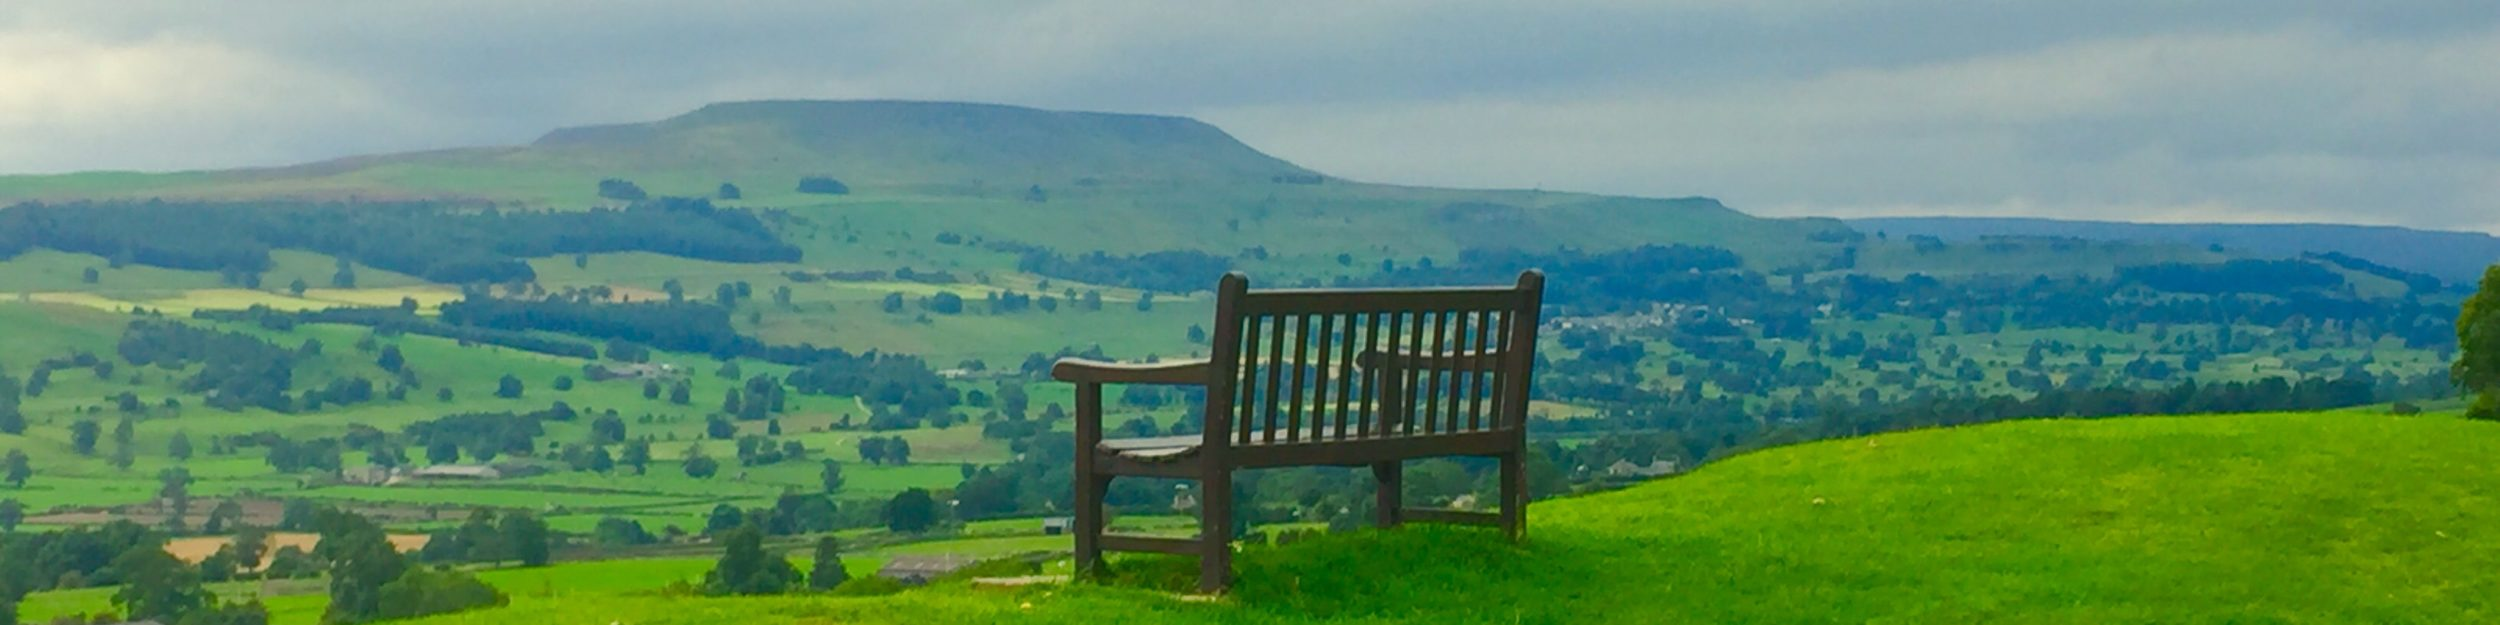 My Favourite Bench